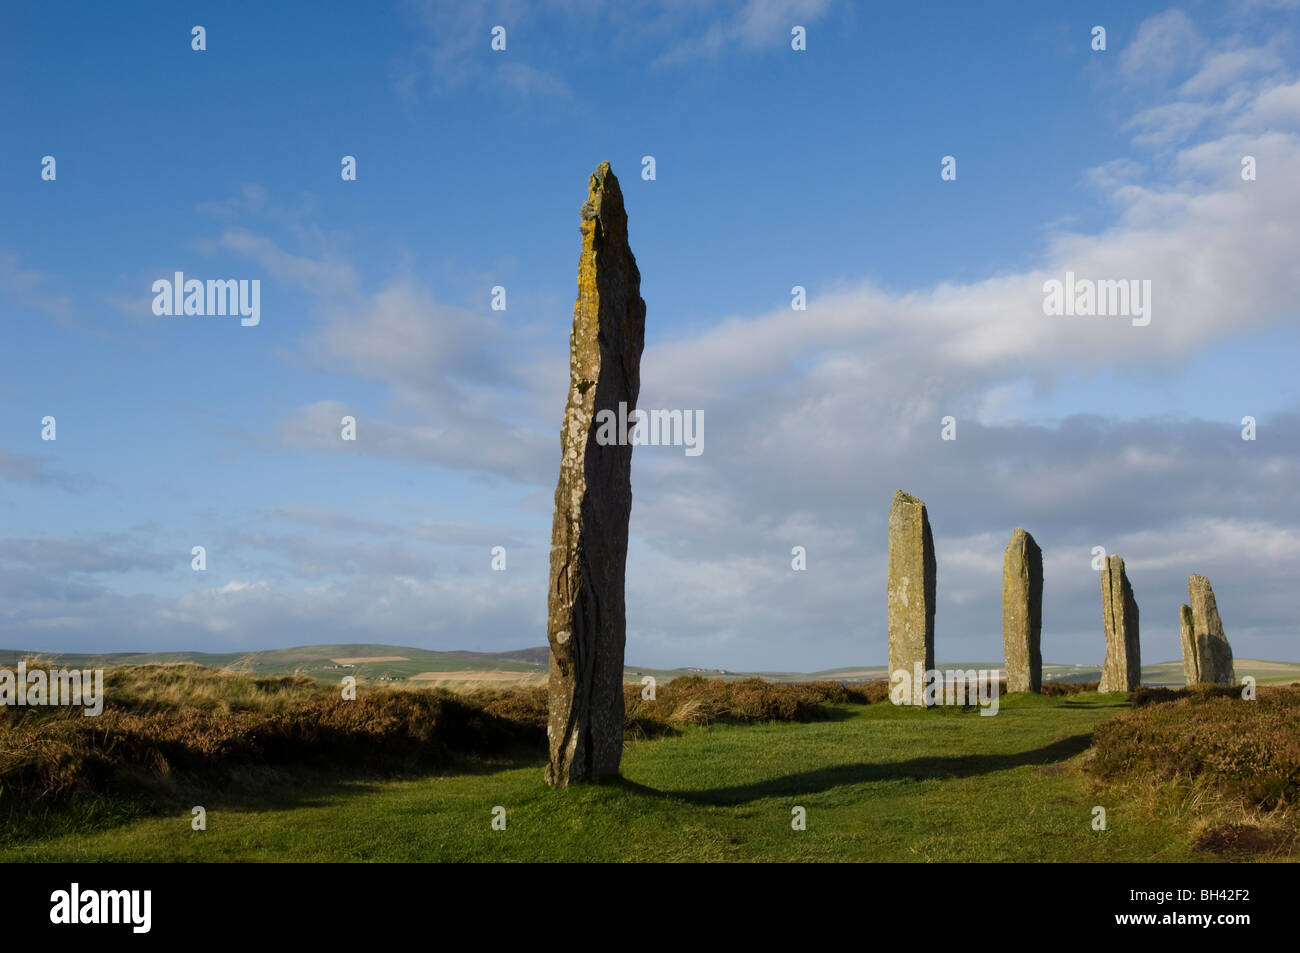 The Ring of Brodgar, a world heritage site, on the mainland of the Orkney Isles, Scotland, 20th October 2008. - Stock Image